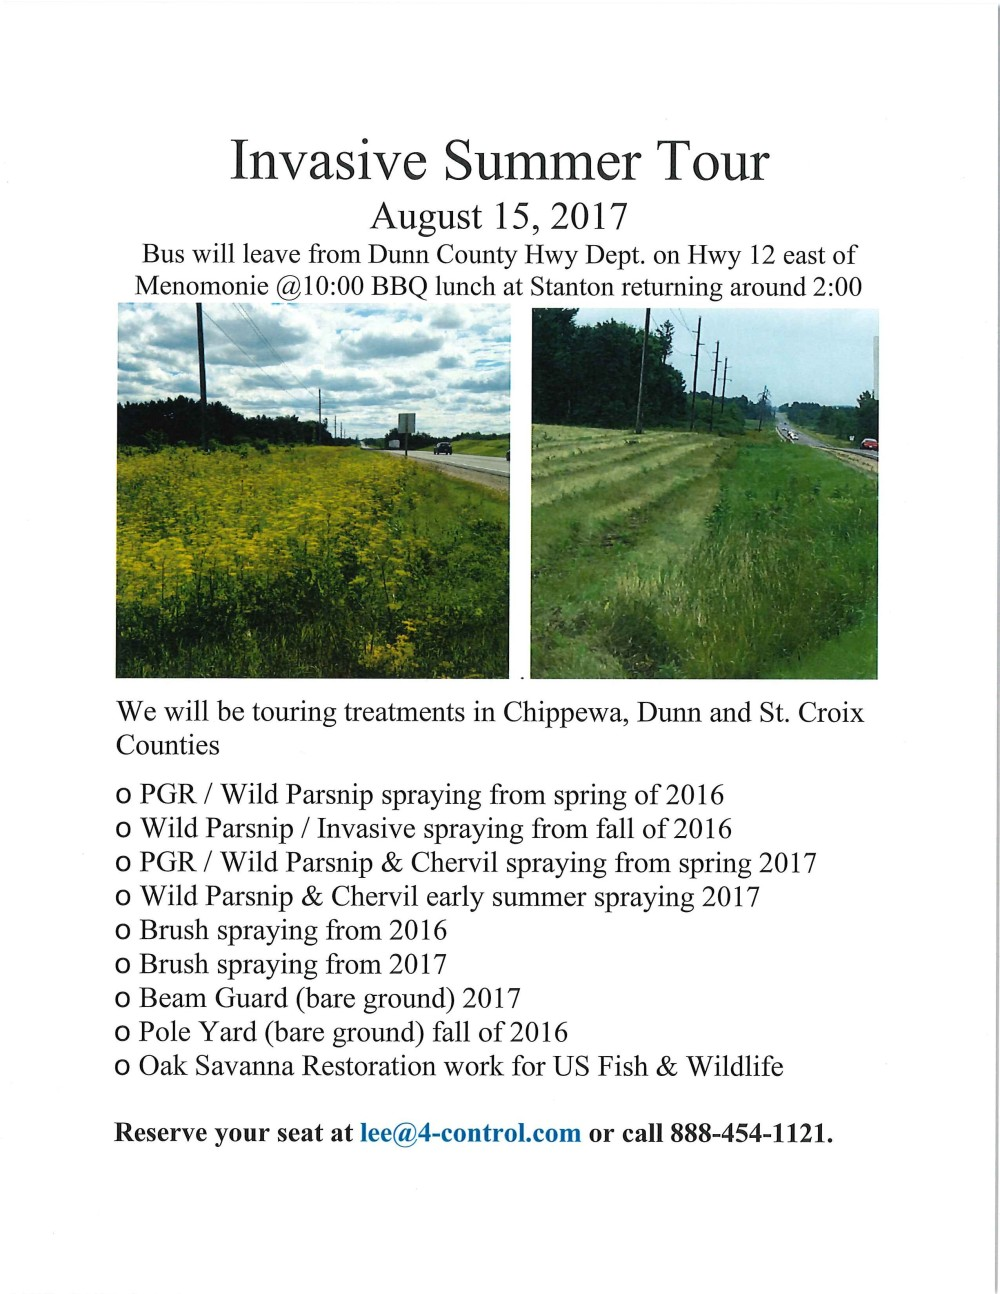 2017 4-Control Summer Invasive Tour